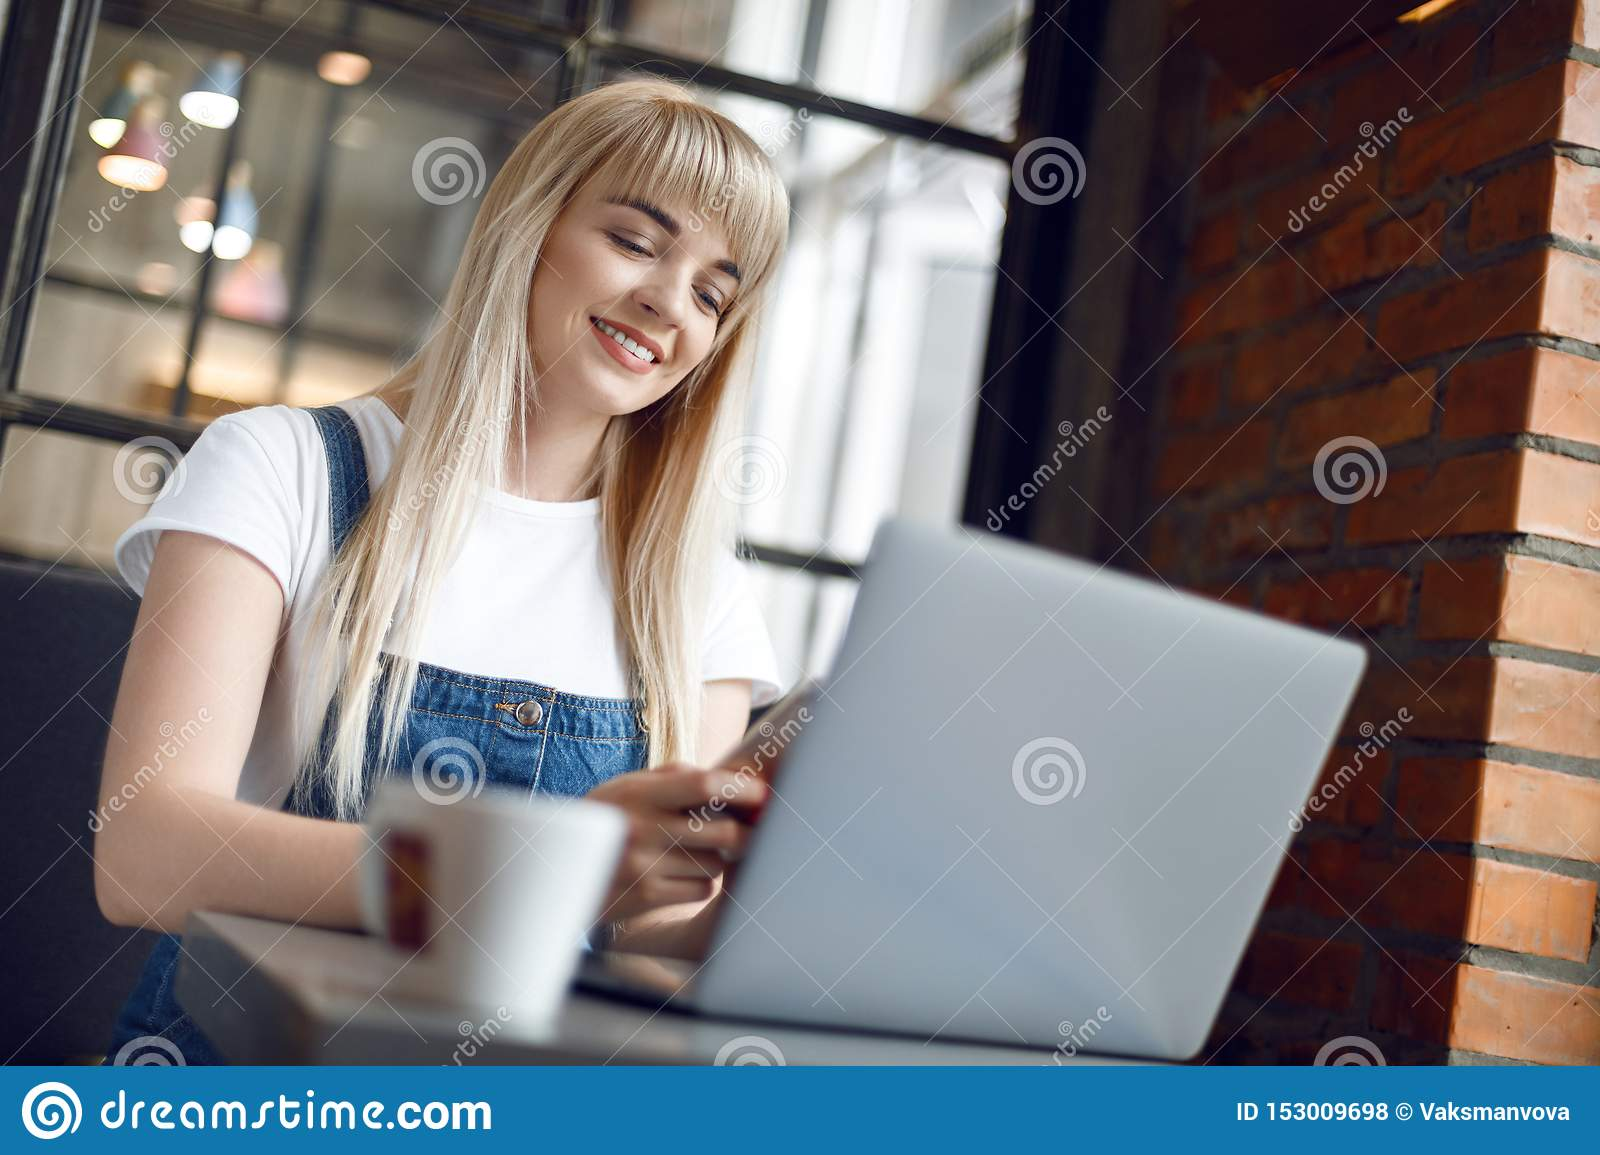 Young girl at cafe drinking coffee and using mobile phone. Online shopping